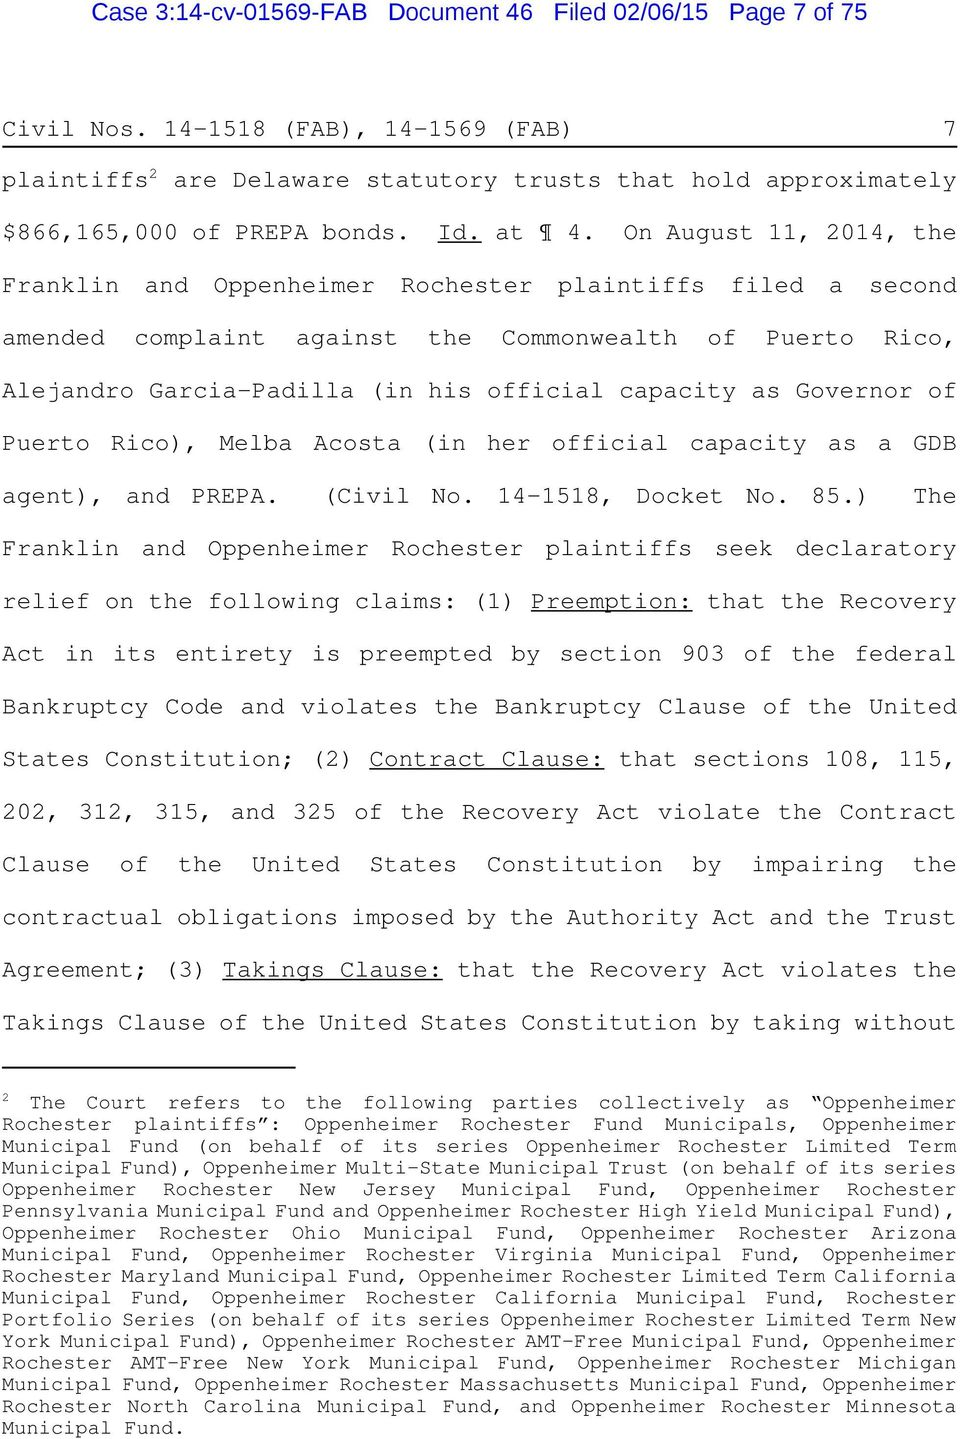 On August 11, 2014, the Franklin and Oppenheimer Rochester plaintiffs filed a second amended complaint against the Commonwealth of Puerto Rico, Alejandro Garcia-Padilla (in his official capacity as